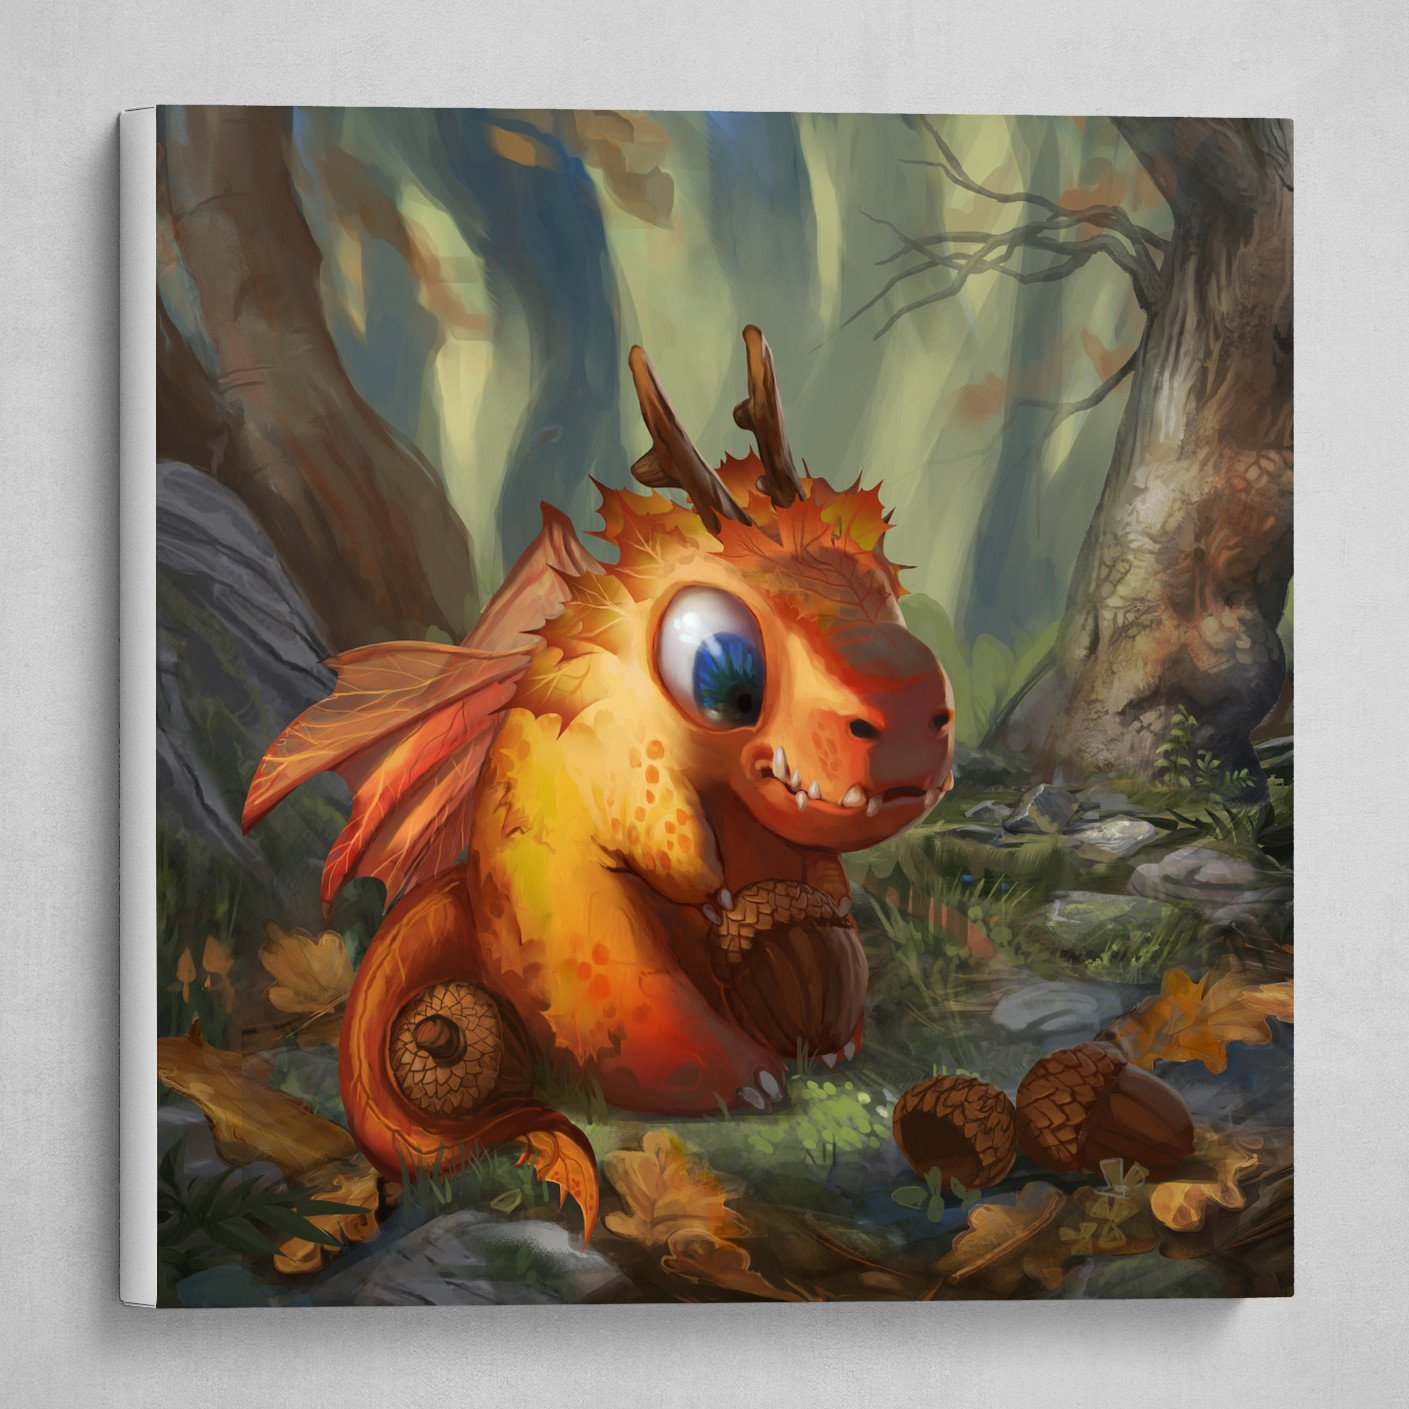 Autumn Forest Dragon Baby Creature